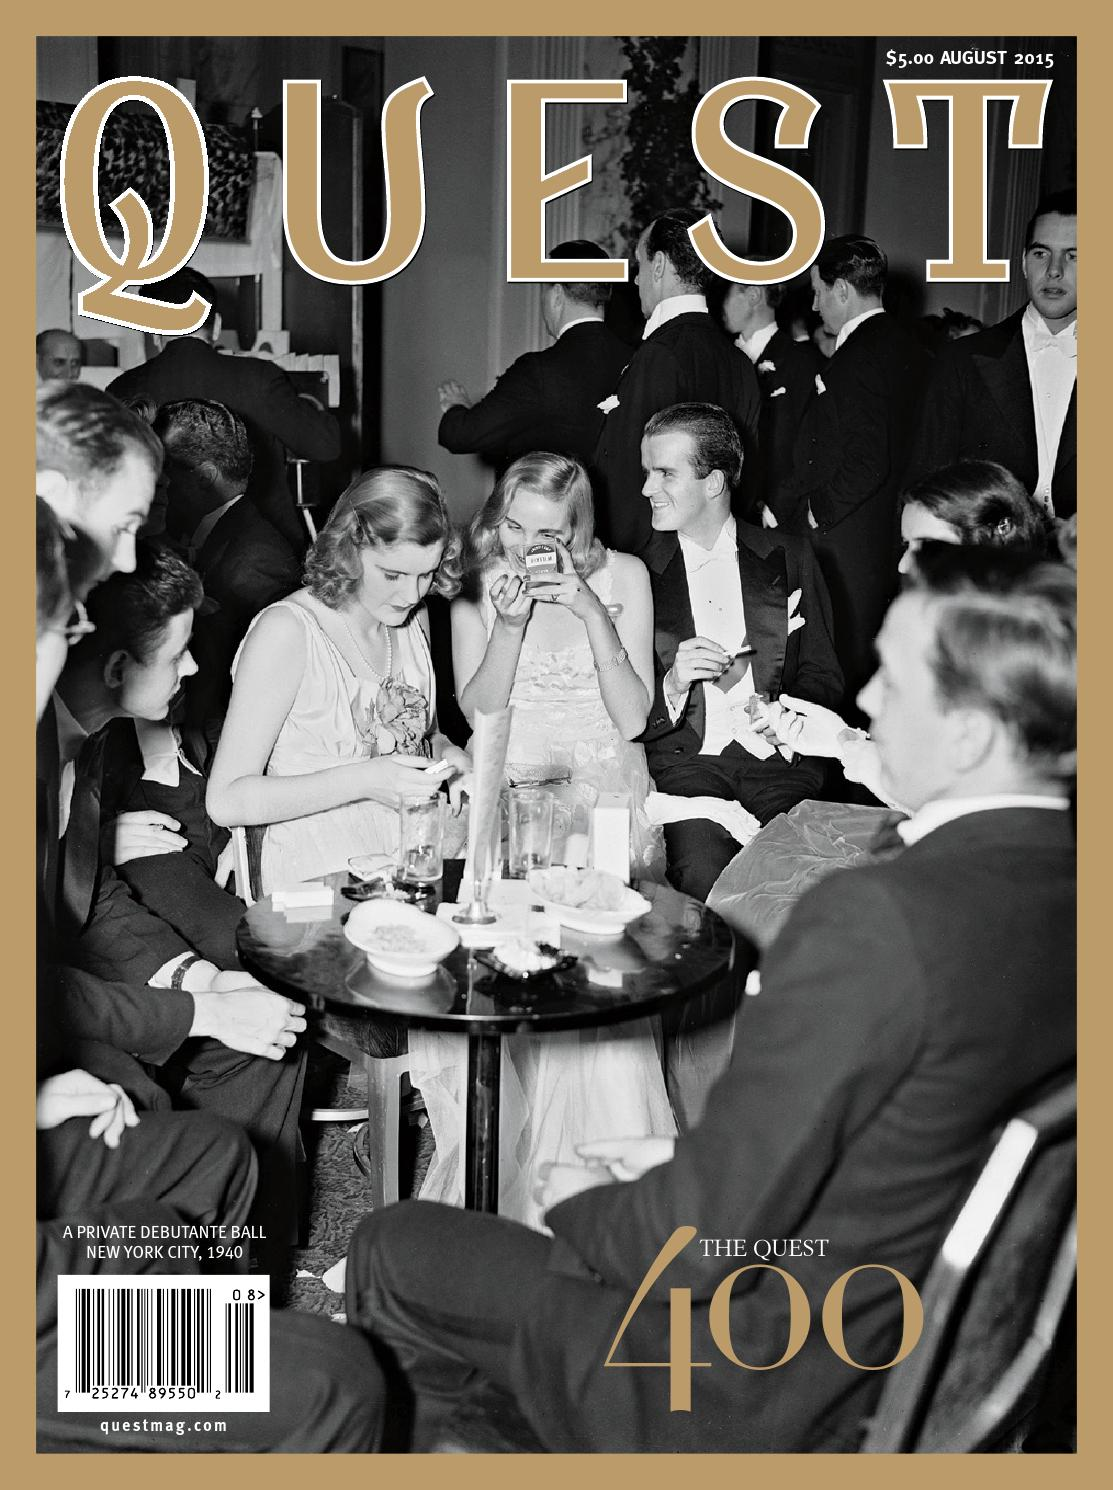 Quest august 2016 by quest magazine   issuu